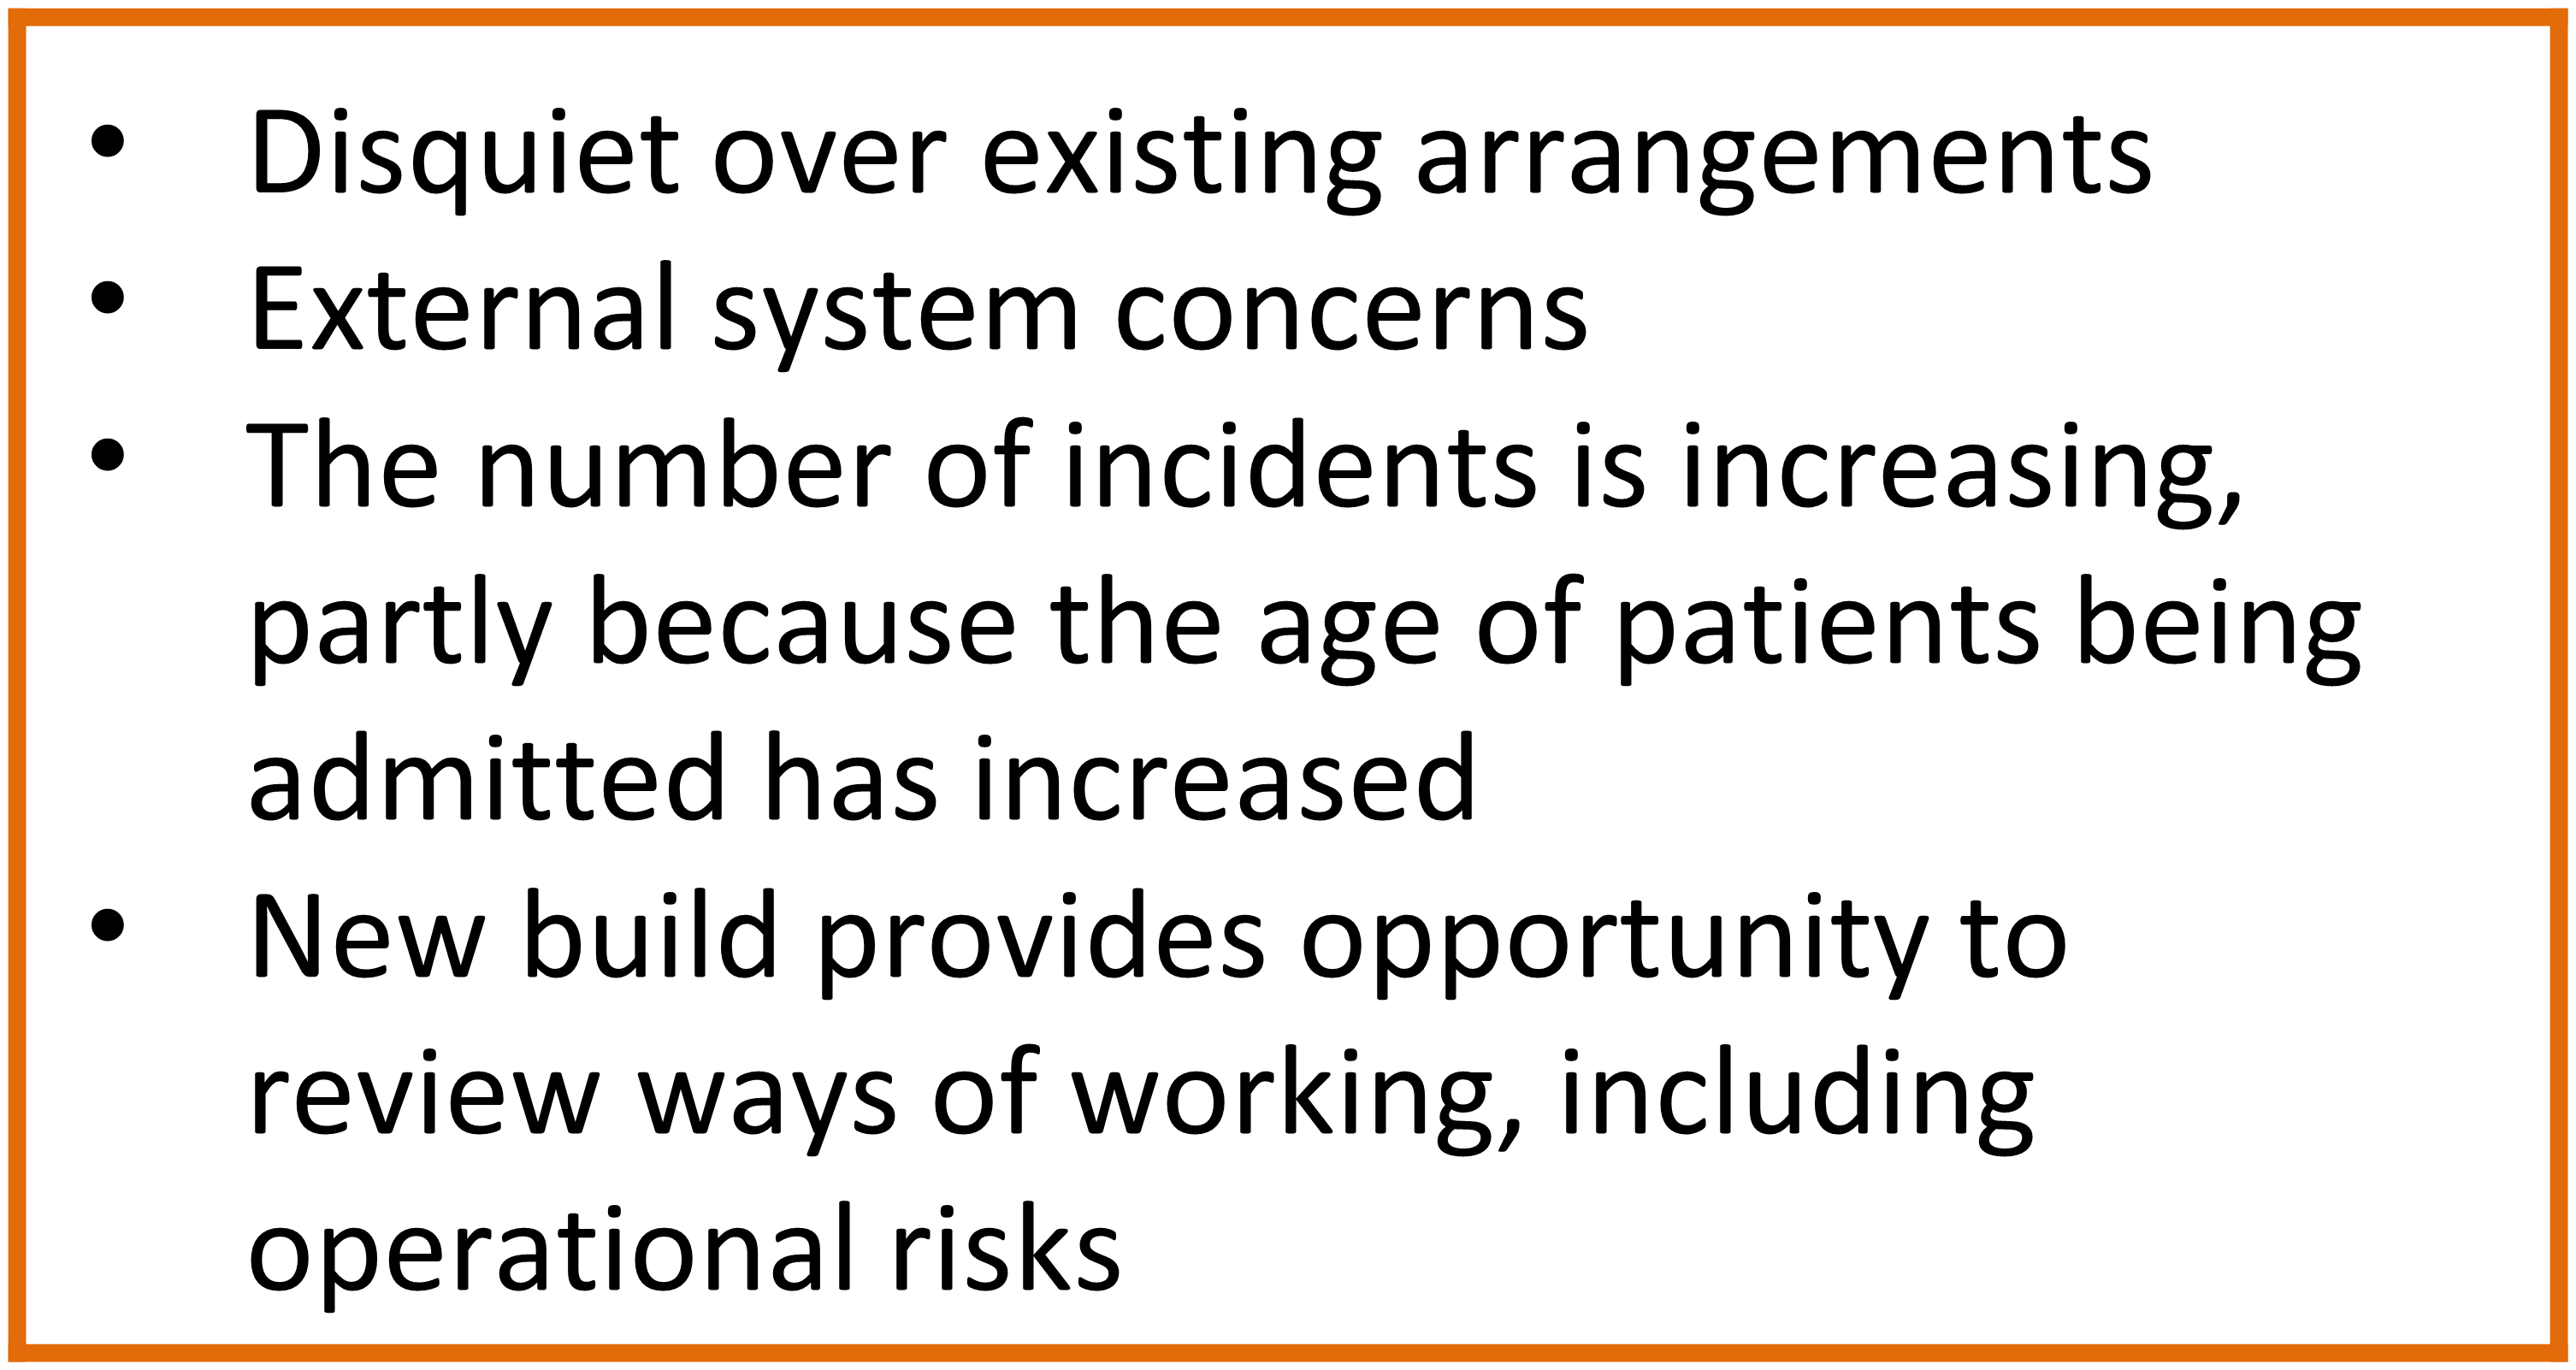 The reasons for carrying out the example SSA were: disquiet over existing arrangements; external system concerns; the number of incidents is increasing, partly because the age of patients being admitted has increased; and new build provides opportunity to review ways of working, including operational risks.